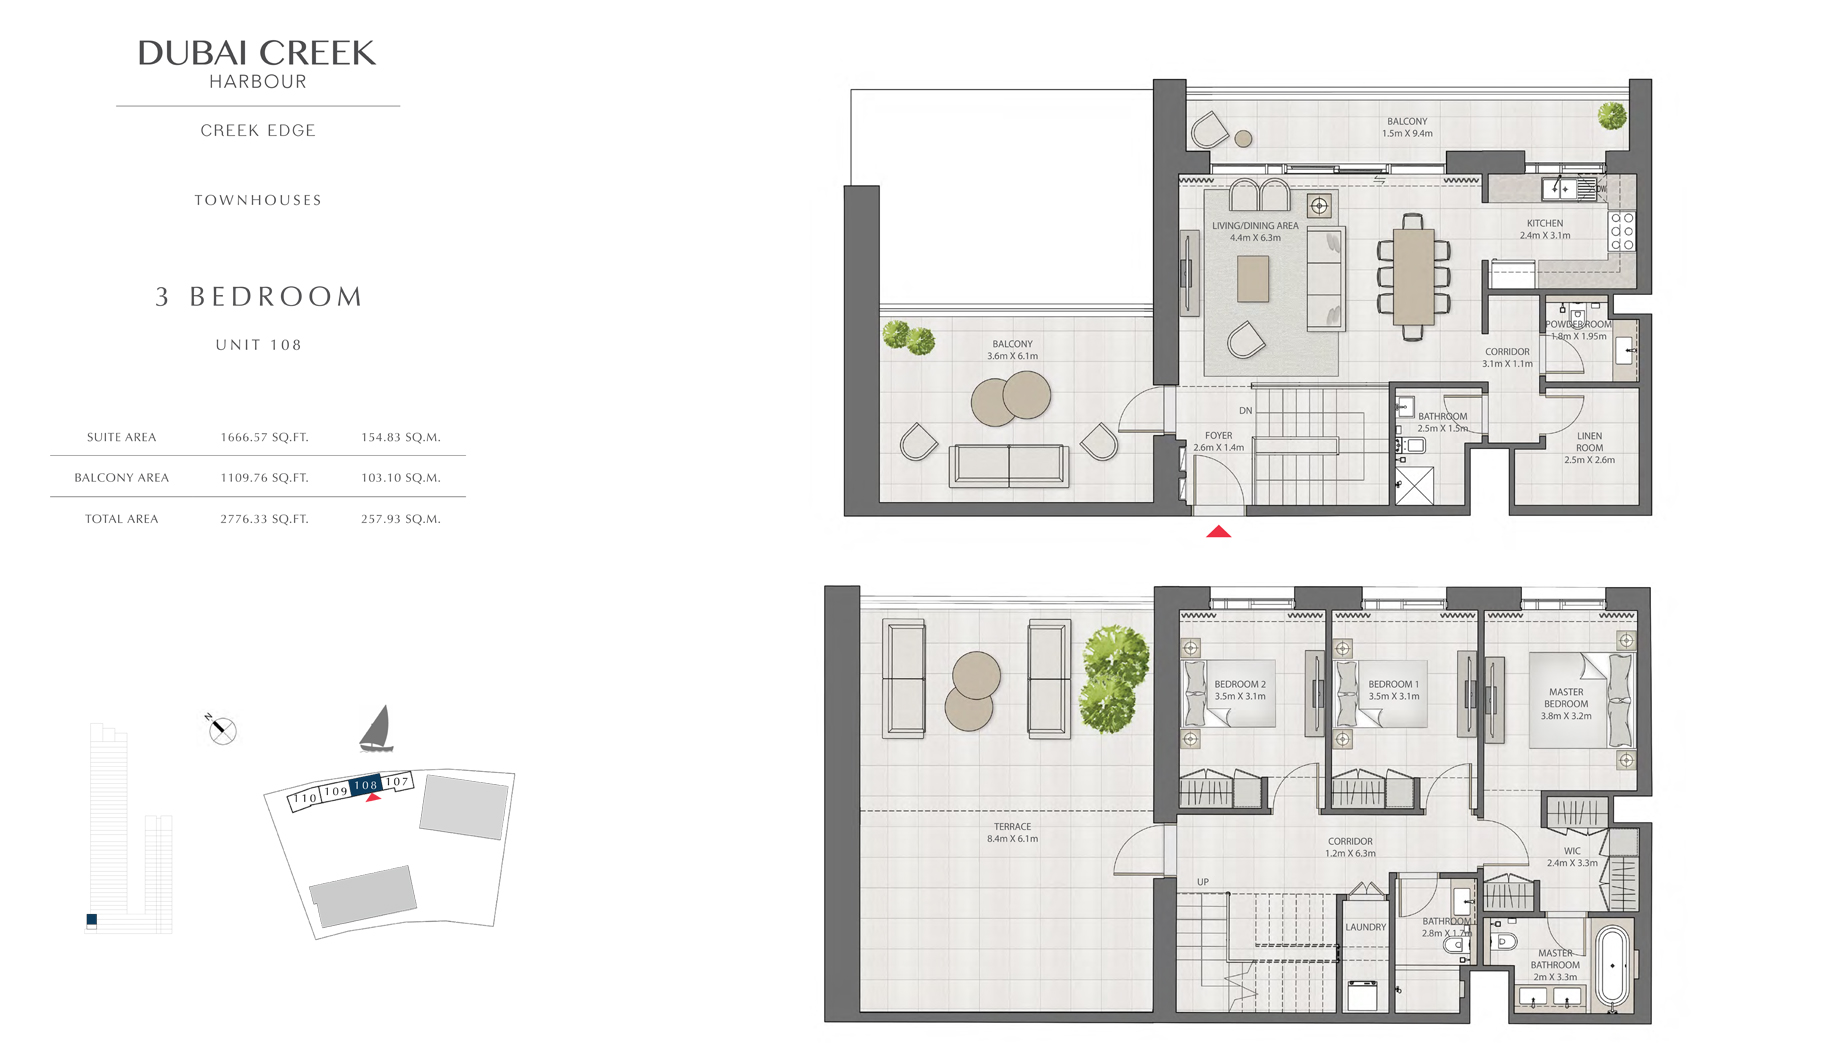 3 Bedroom Townhouses Unit 108 Size 2776 sq.ft